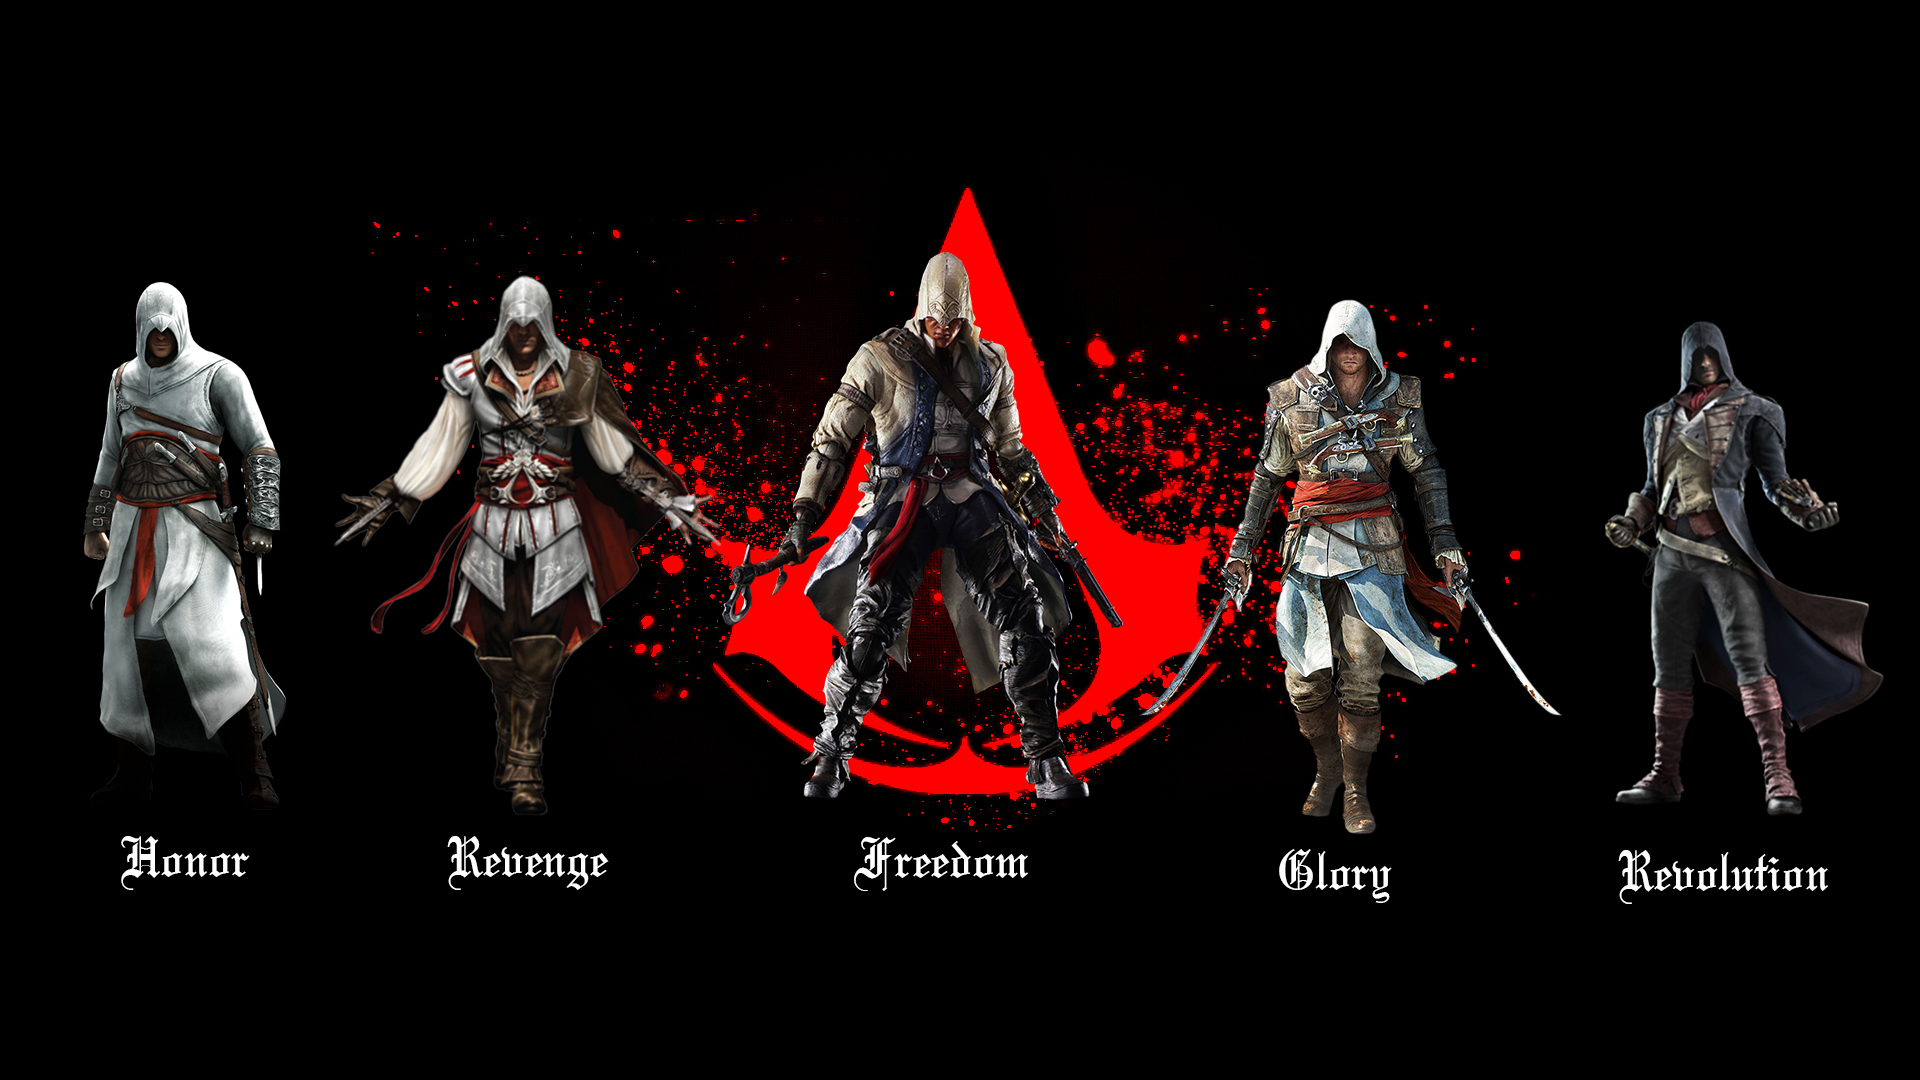 Assassins Creed Wallpaper Collection For Download 1920x1080